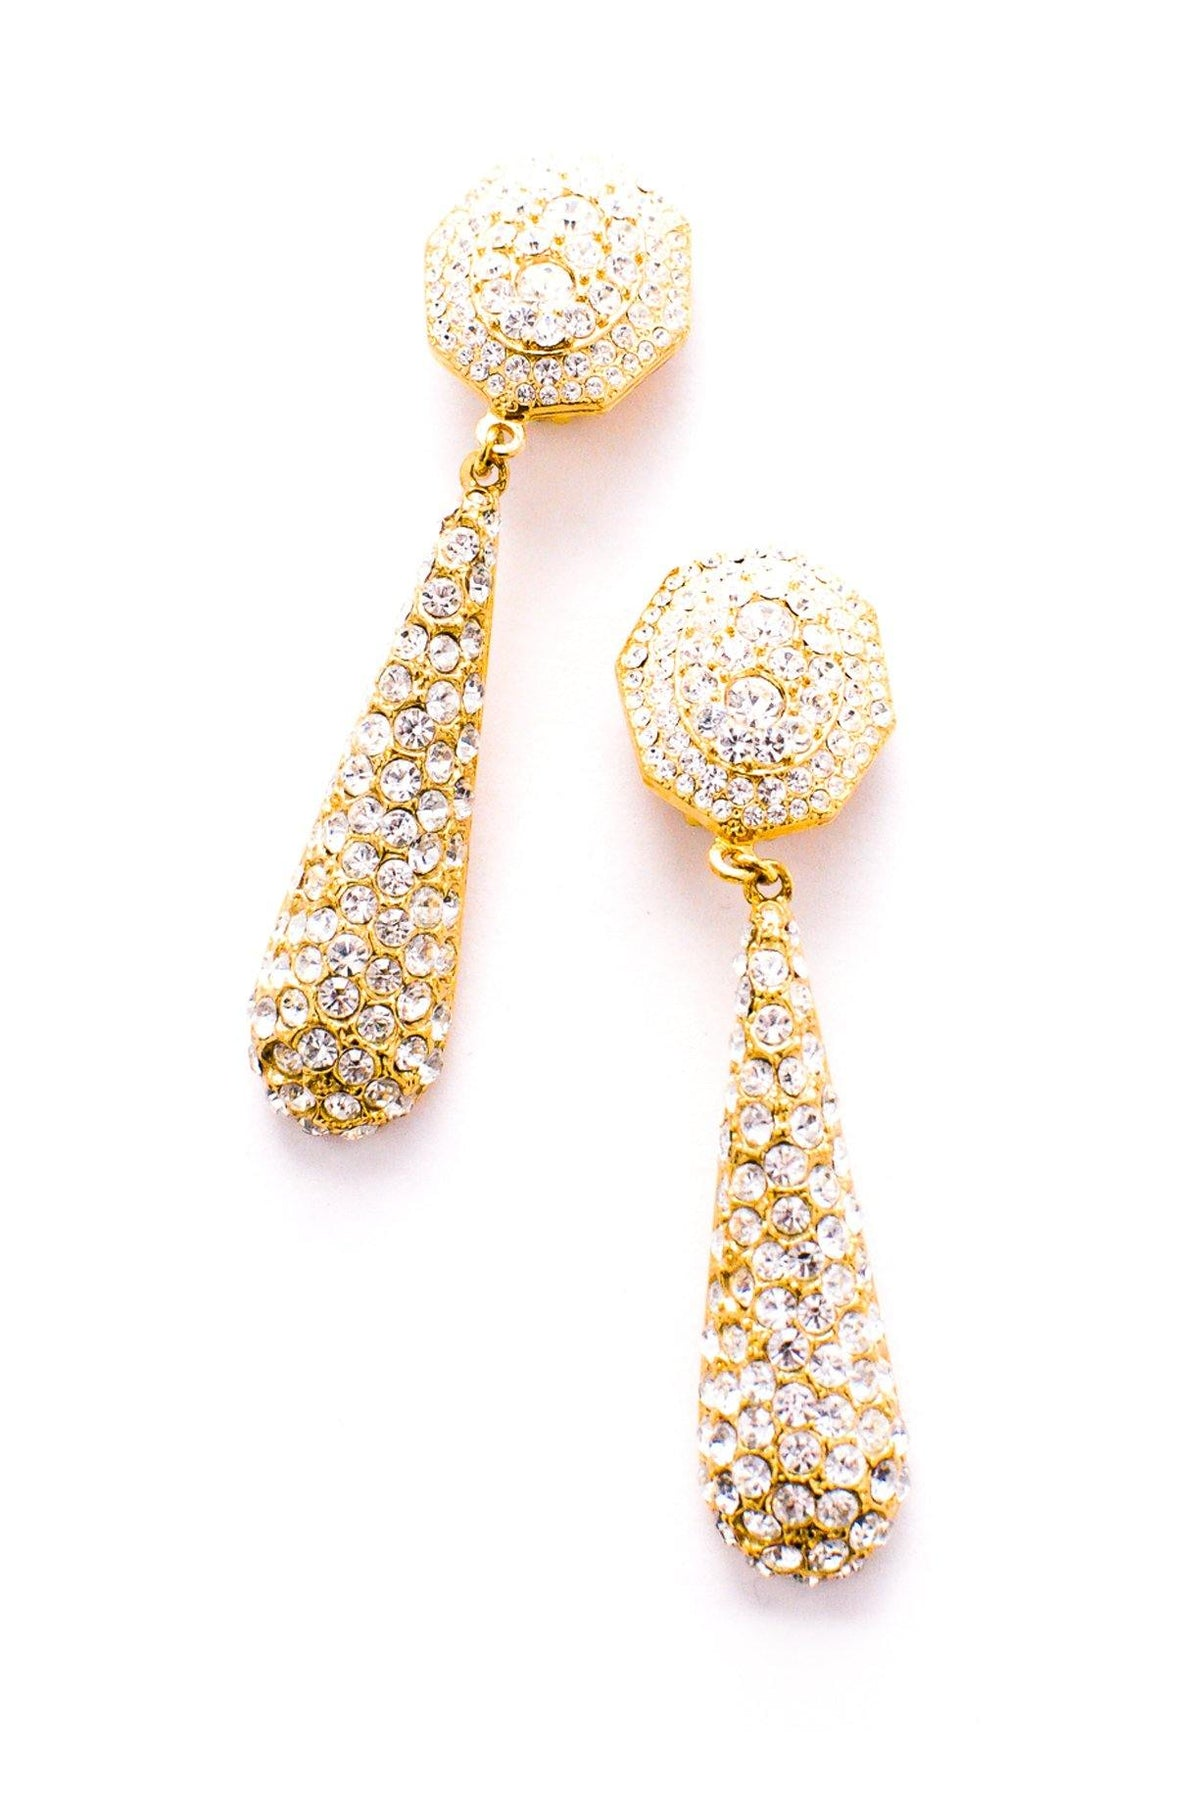 Vintage Rhinestone Statement Drop Clip-On Earrings from Sweet & Spark